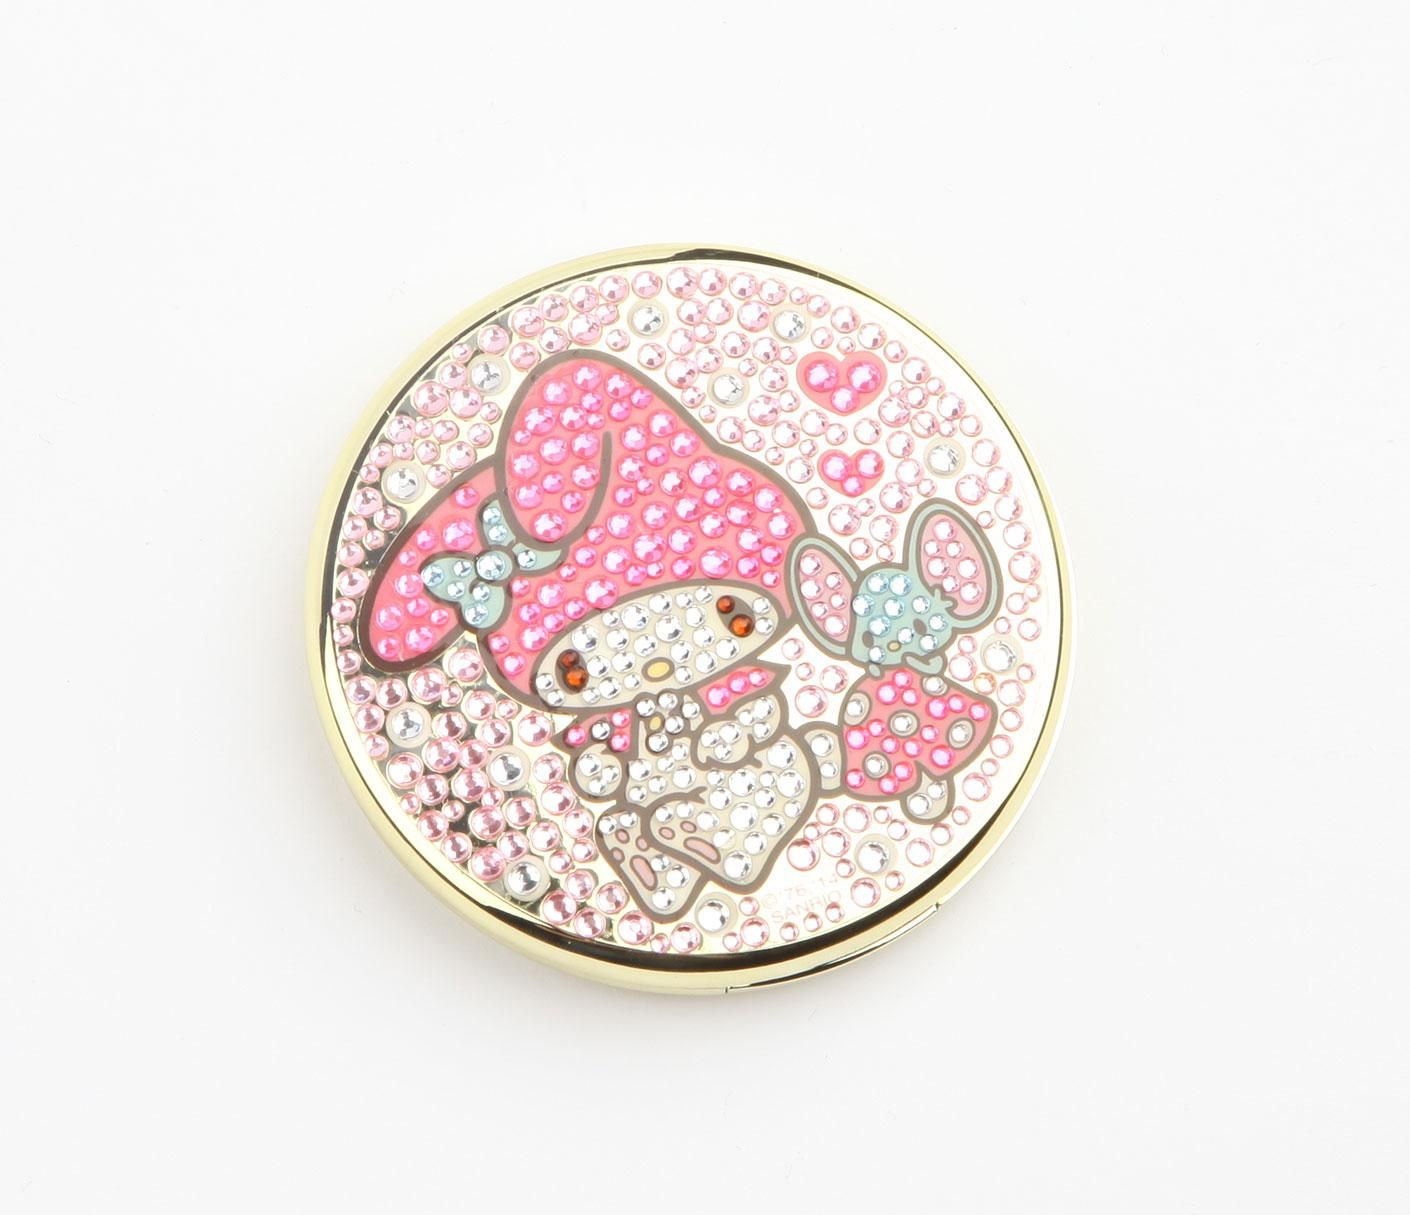 Shimmer Mirror compact by Ulta Bing images My melody